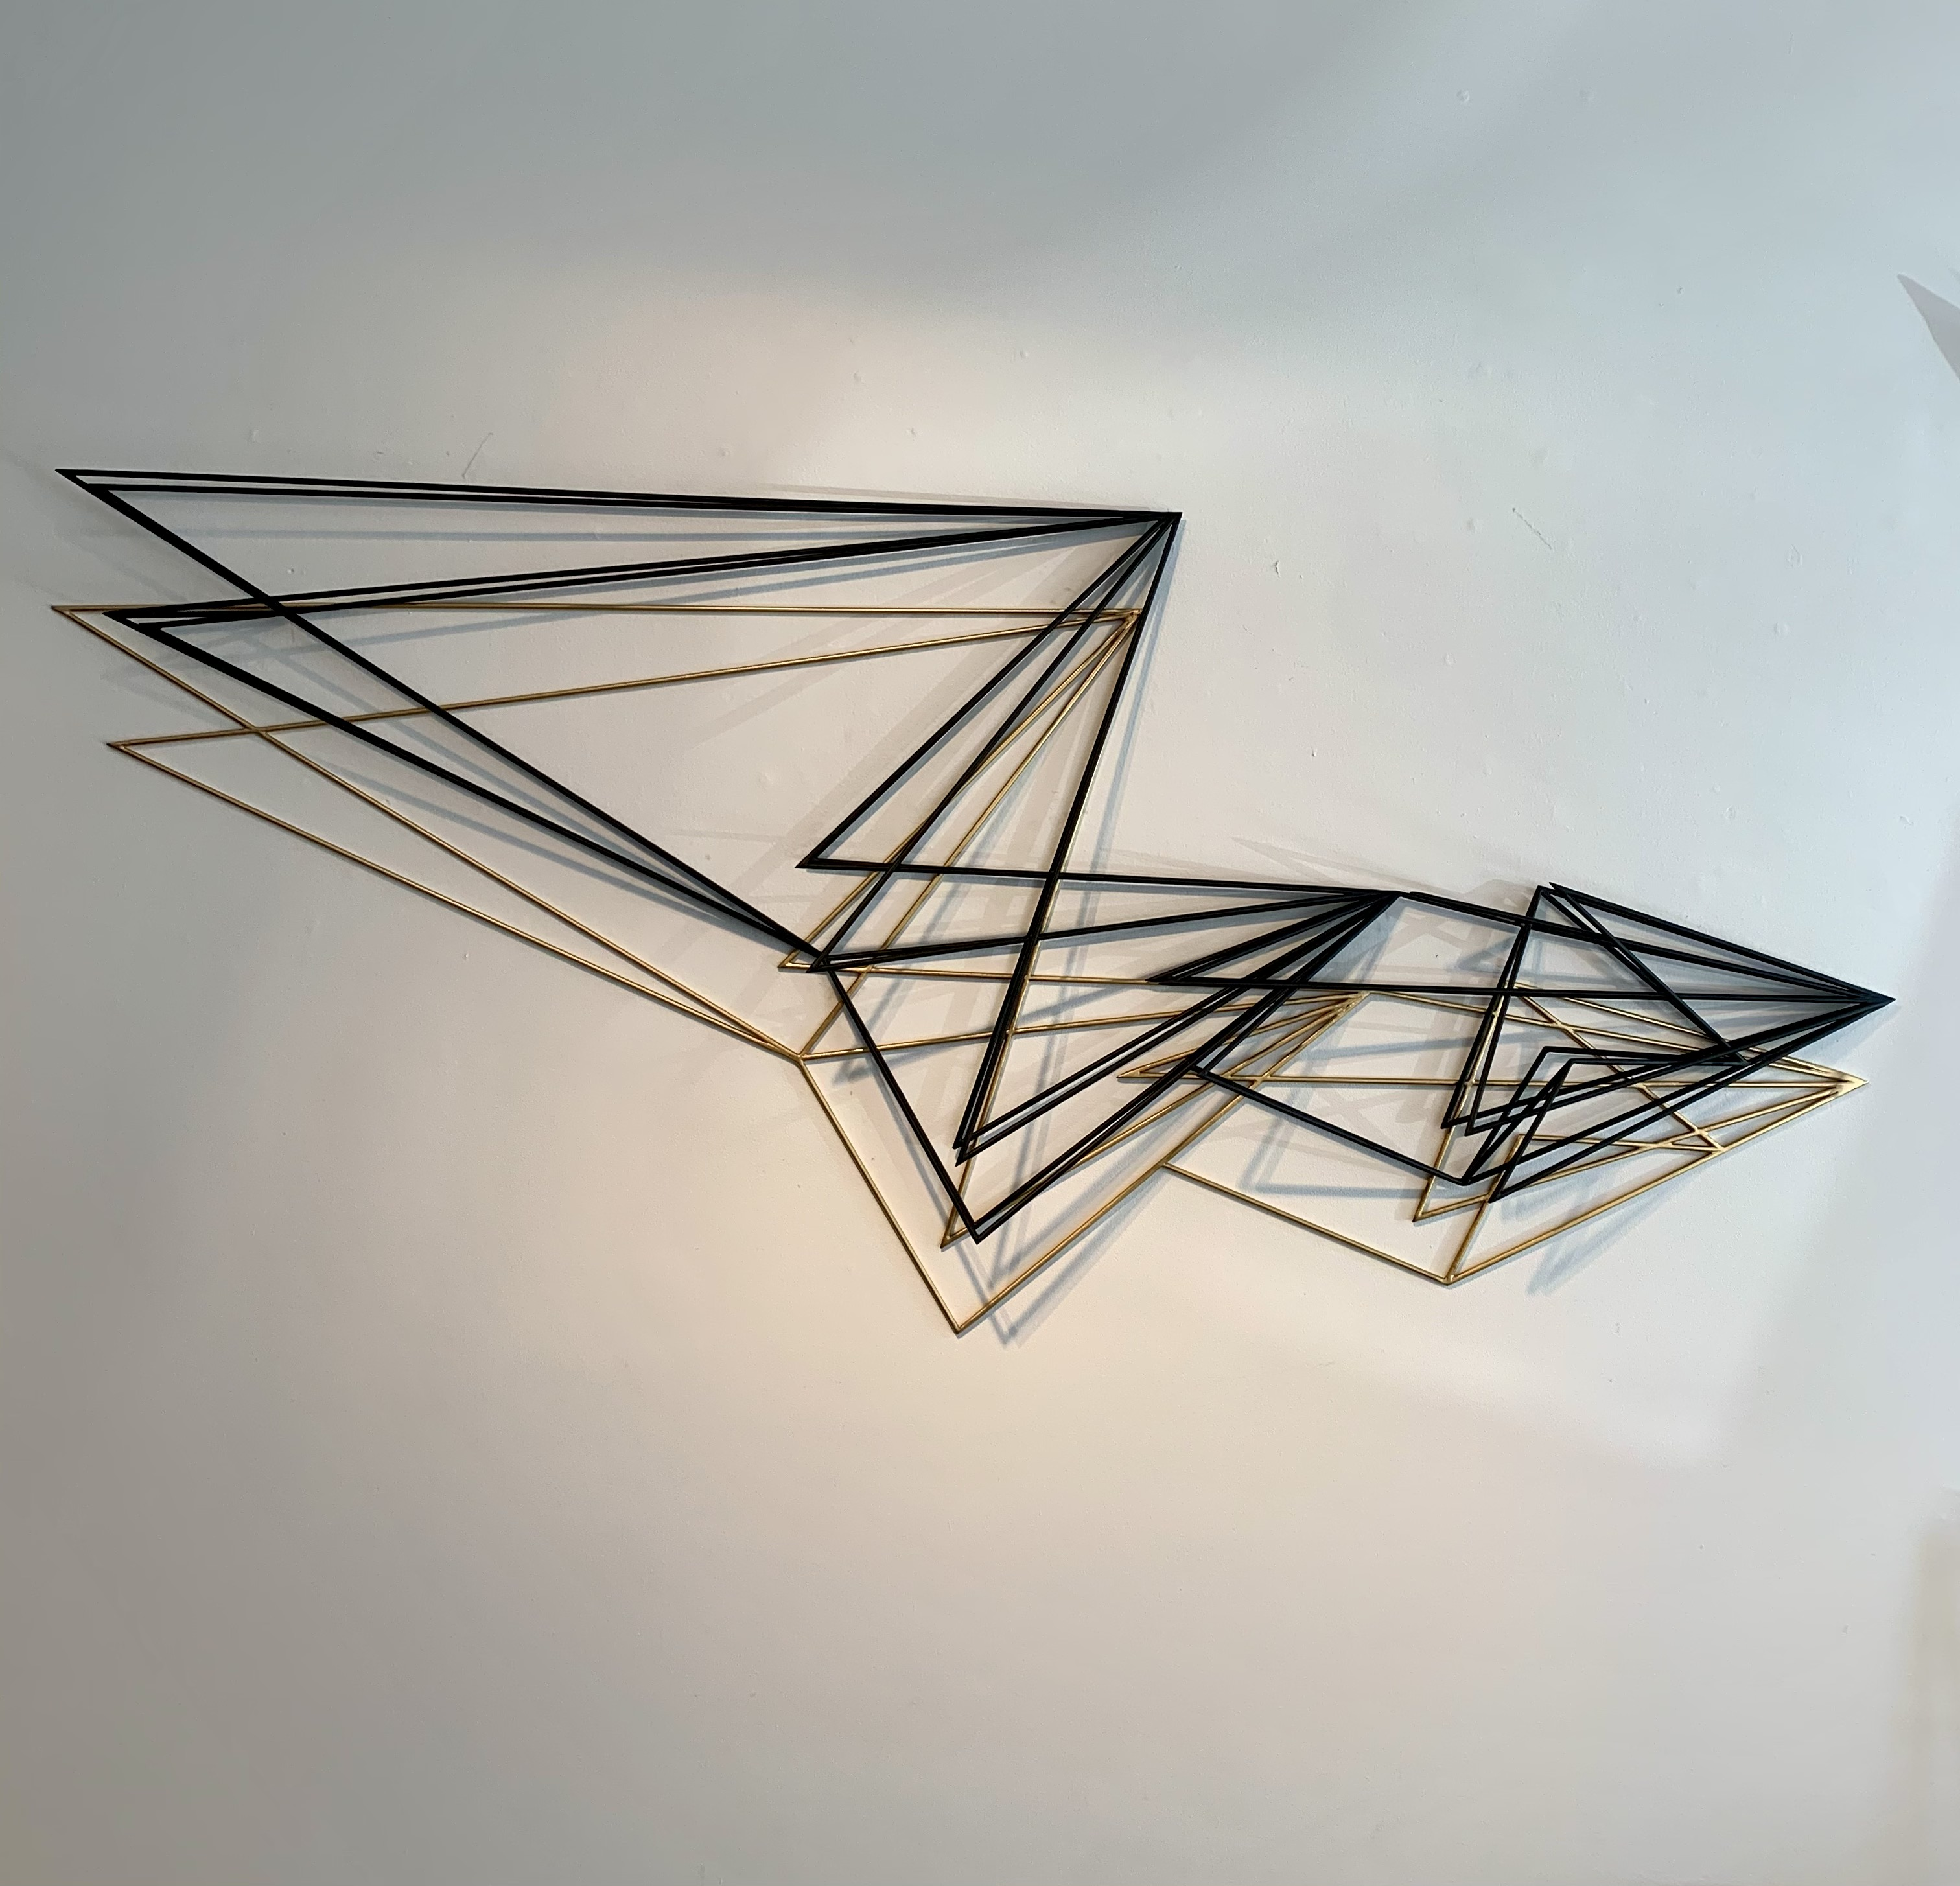 Fragments of 11 by Dion Horstmans at Olsen Gallery